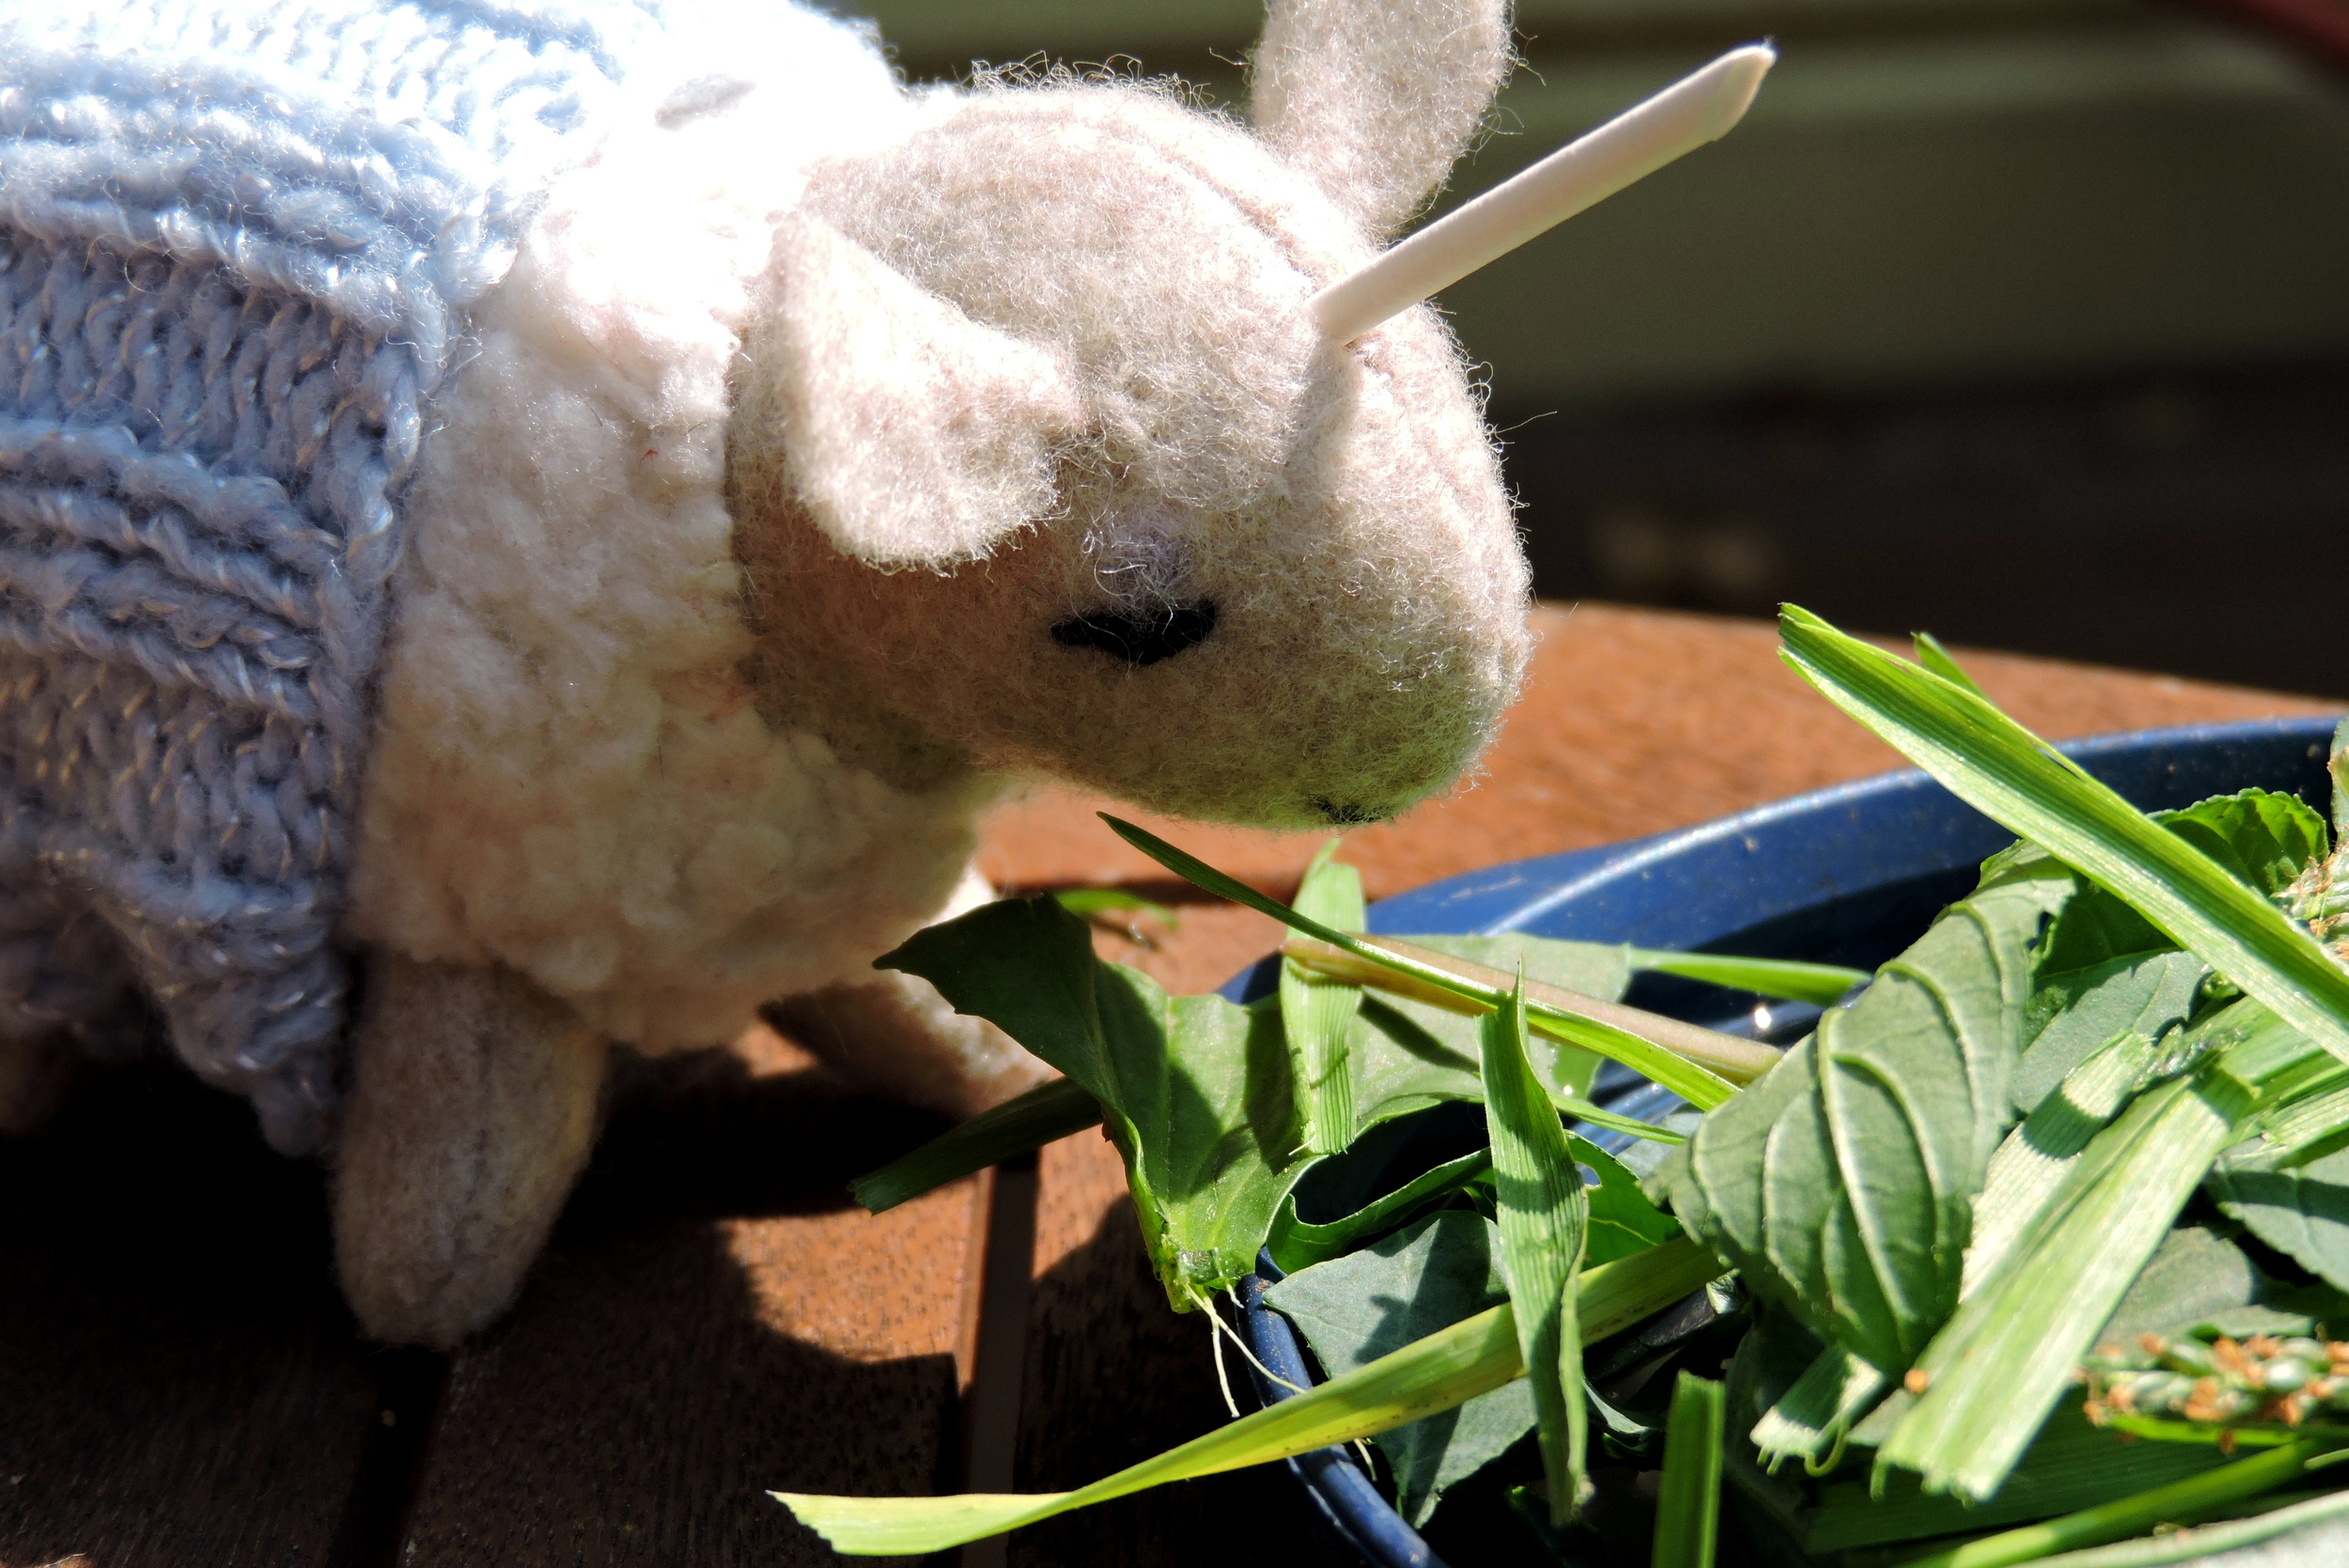 Rutherford the Unicorn Sheep eats a salad.